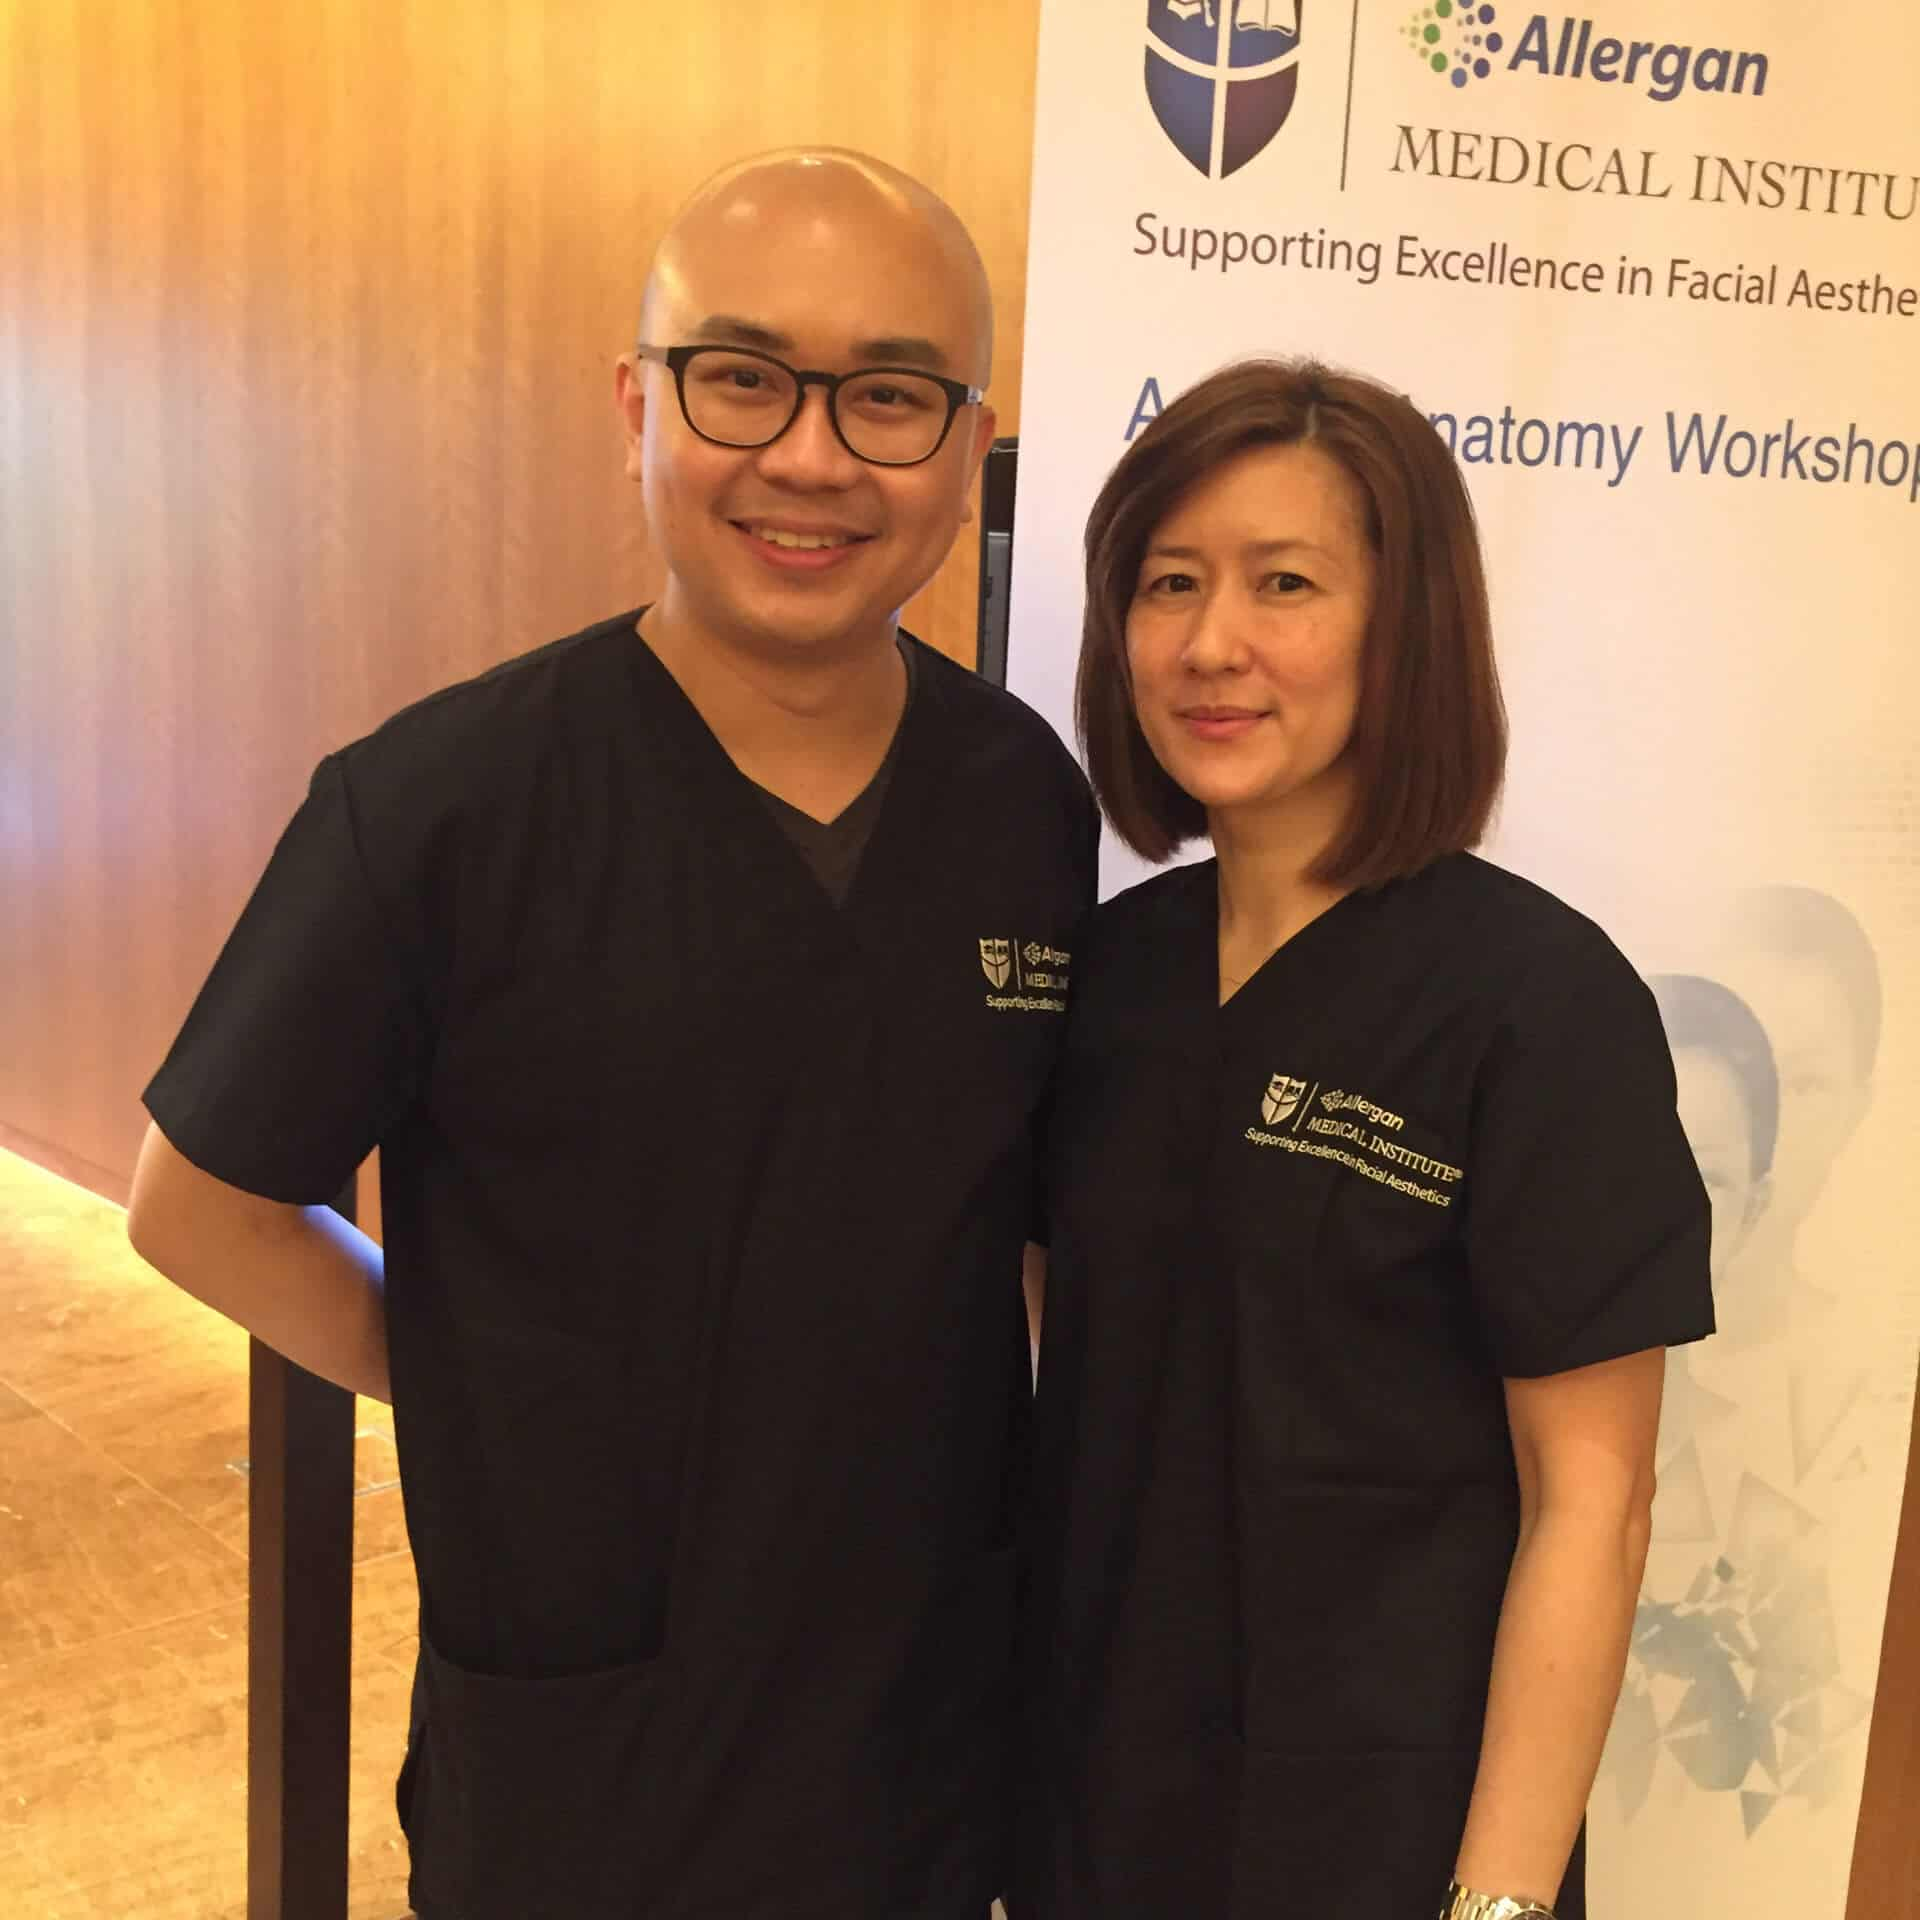 Allergan Medical Institute (AMI) Applied Anatomy Workshop June 2016 with Participant - 1920px-001